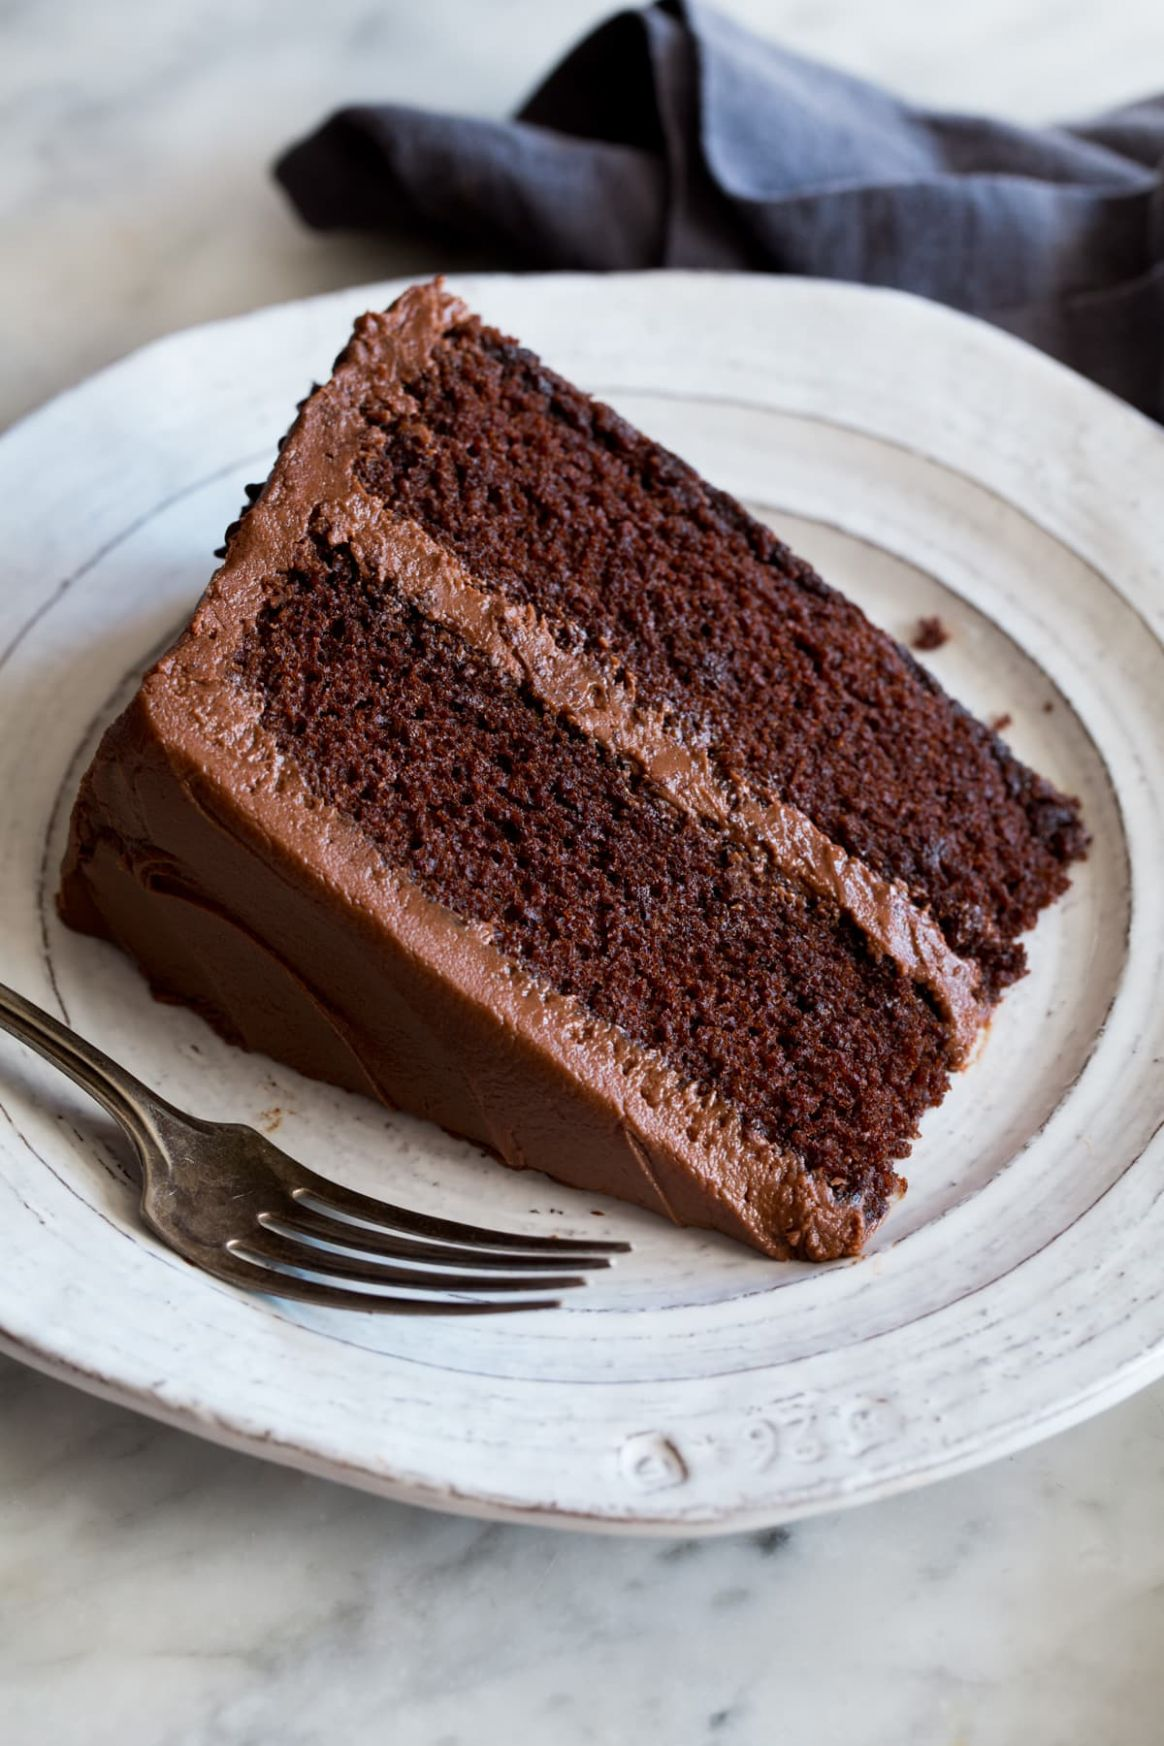 Chocolate Cake with Chocolate Buttercream Frosting - Chocolate Cake Recipes